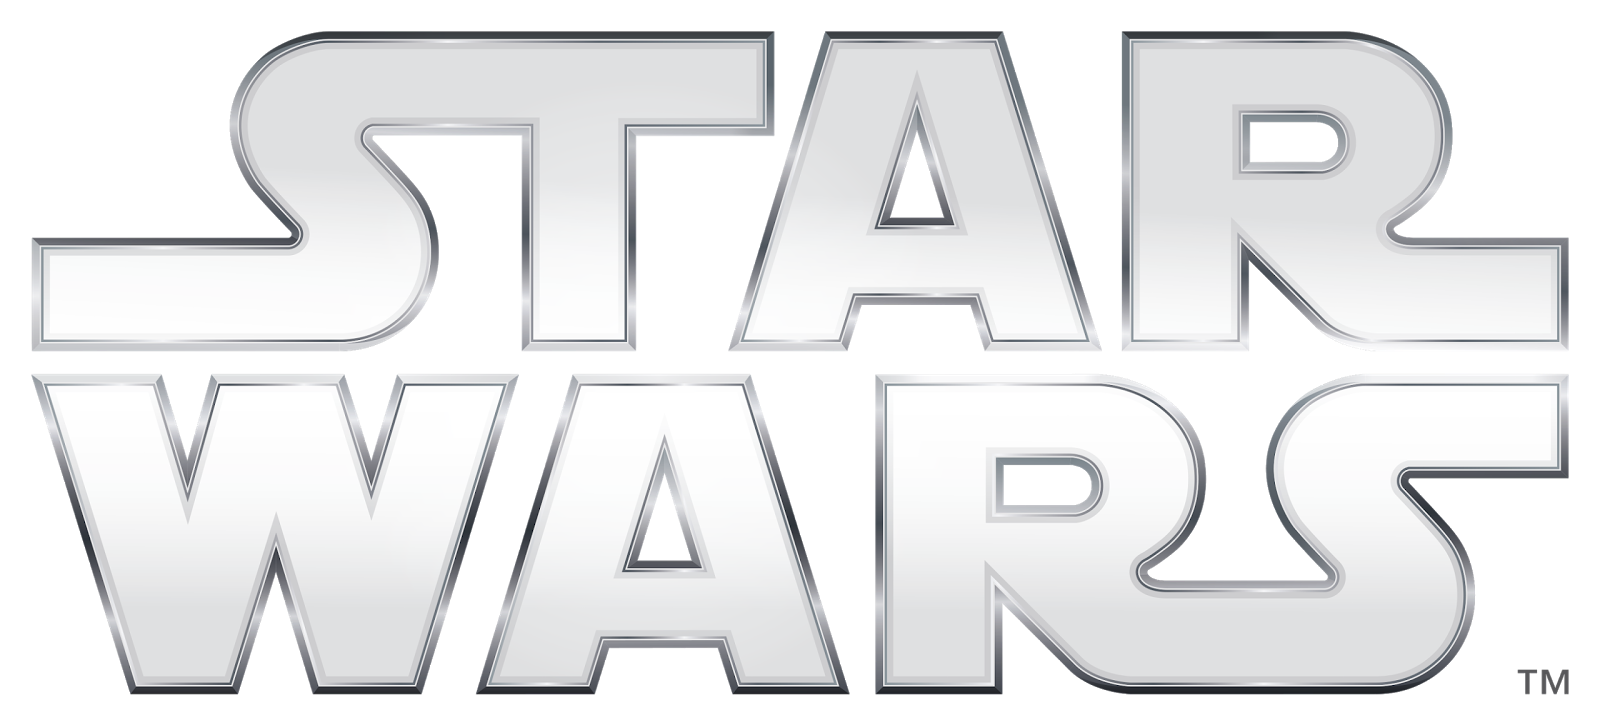 graphic regarding Printable Star Wars called Star Wars Toddlers: Totally free Printable Toppers and Wrappers for